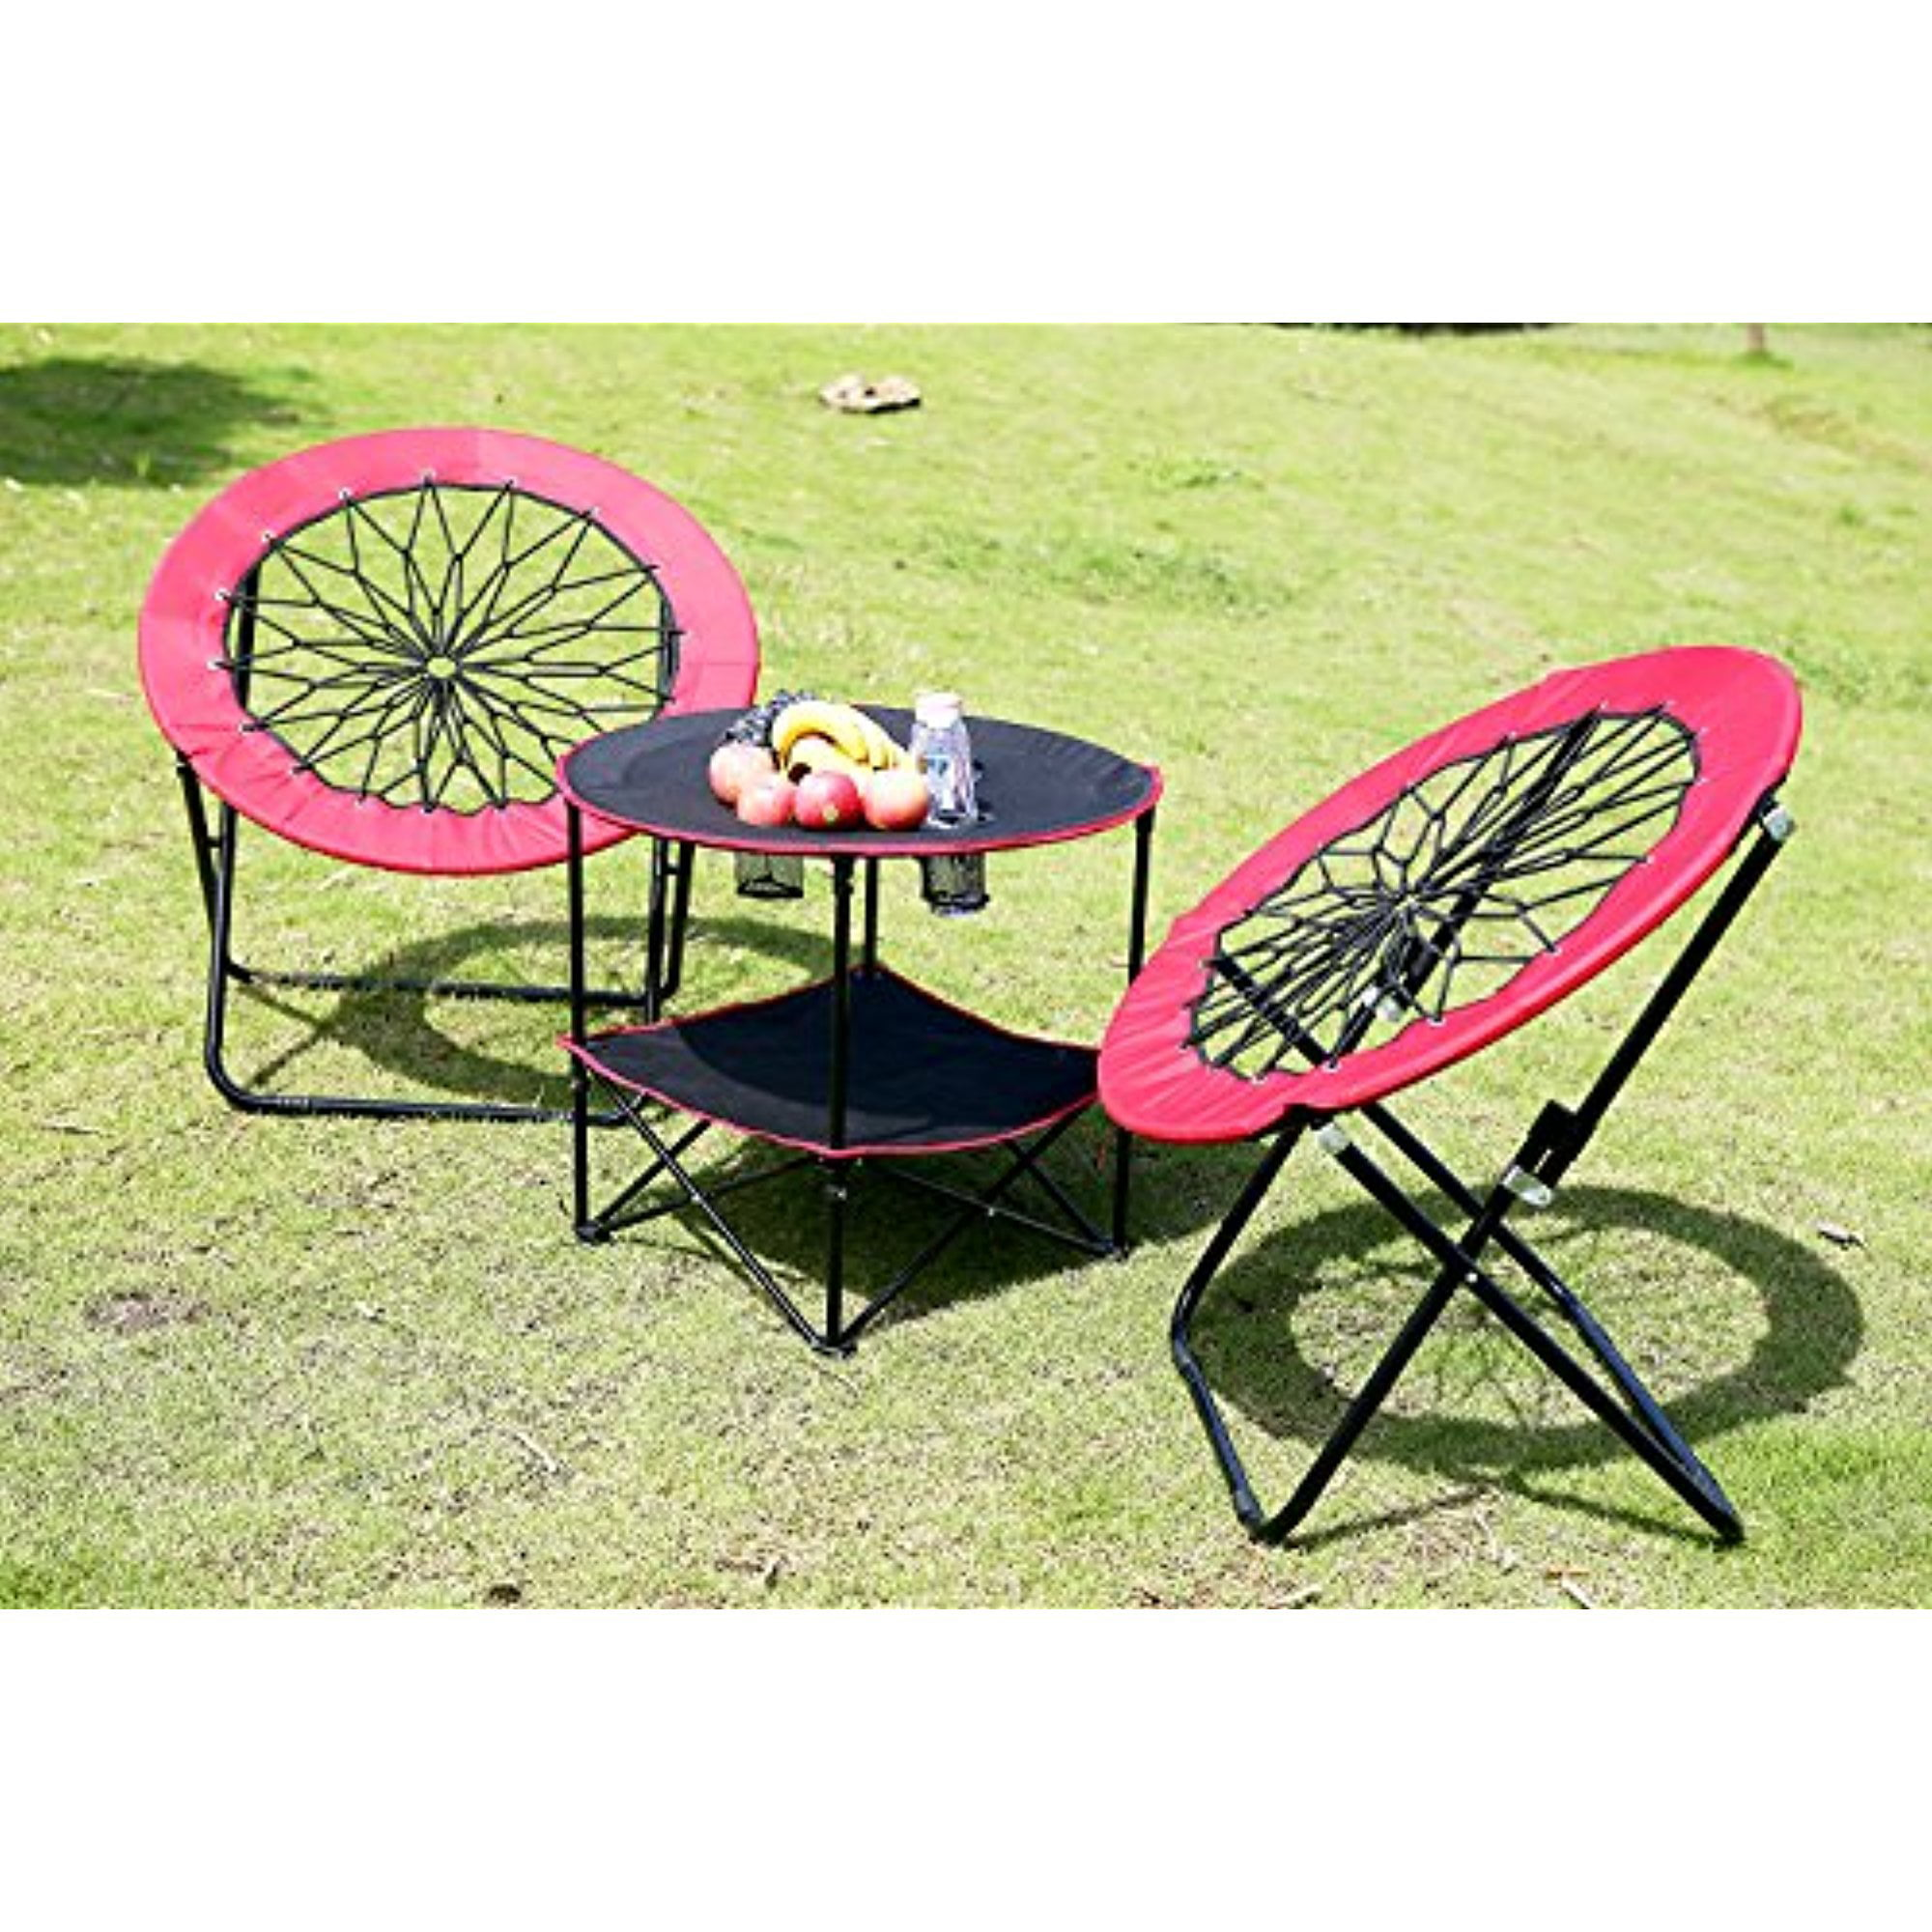 Portable Folding Round Picnic Table and Bungee Dish Chairs 3-in-1 with Mesh Drink Holders Outdoor Camping Table Beach... by Anleolife